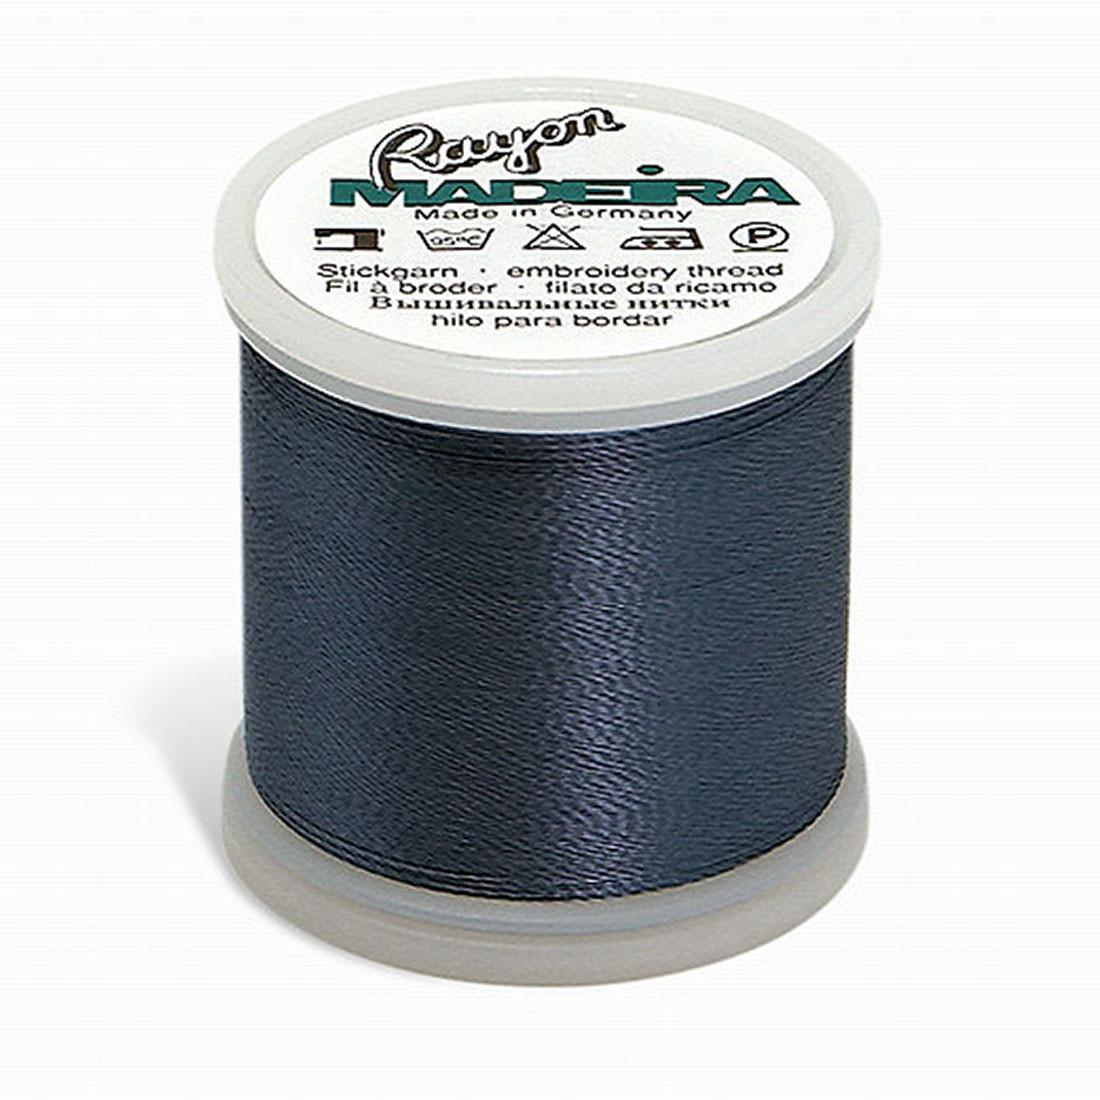 Madeira Rayon - Machine Embroidery Thread - 220YD Spool - Medium Weather Blue